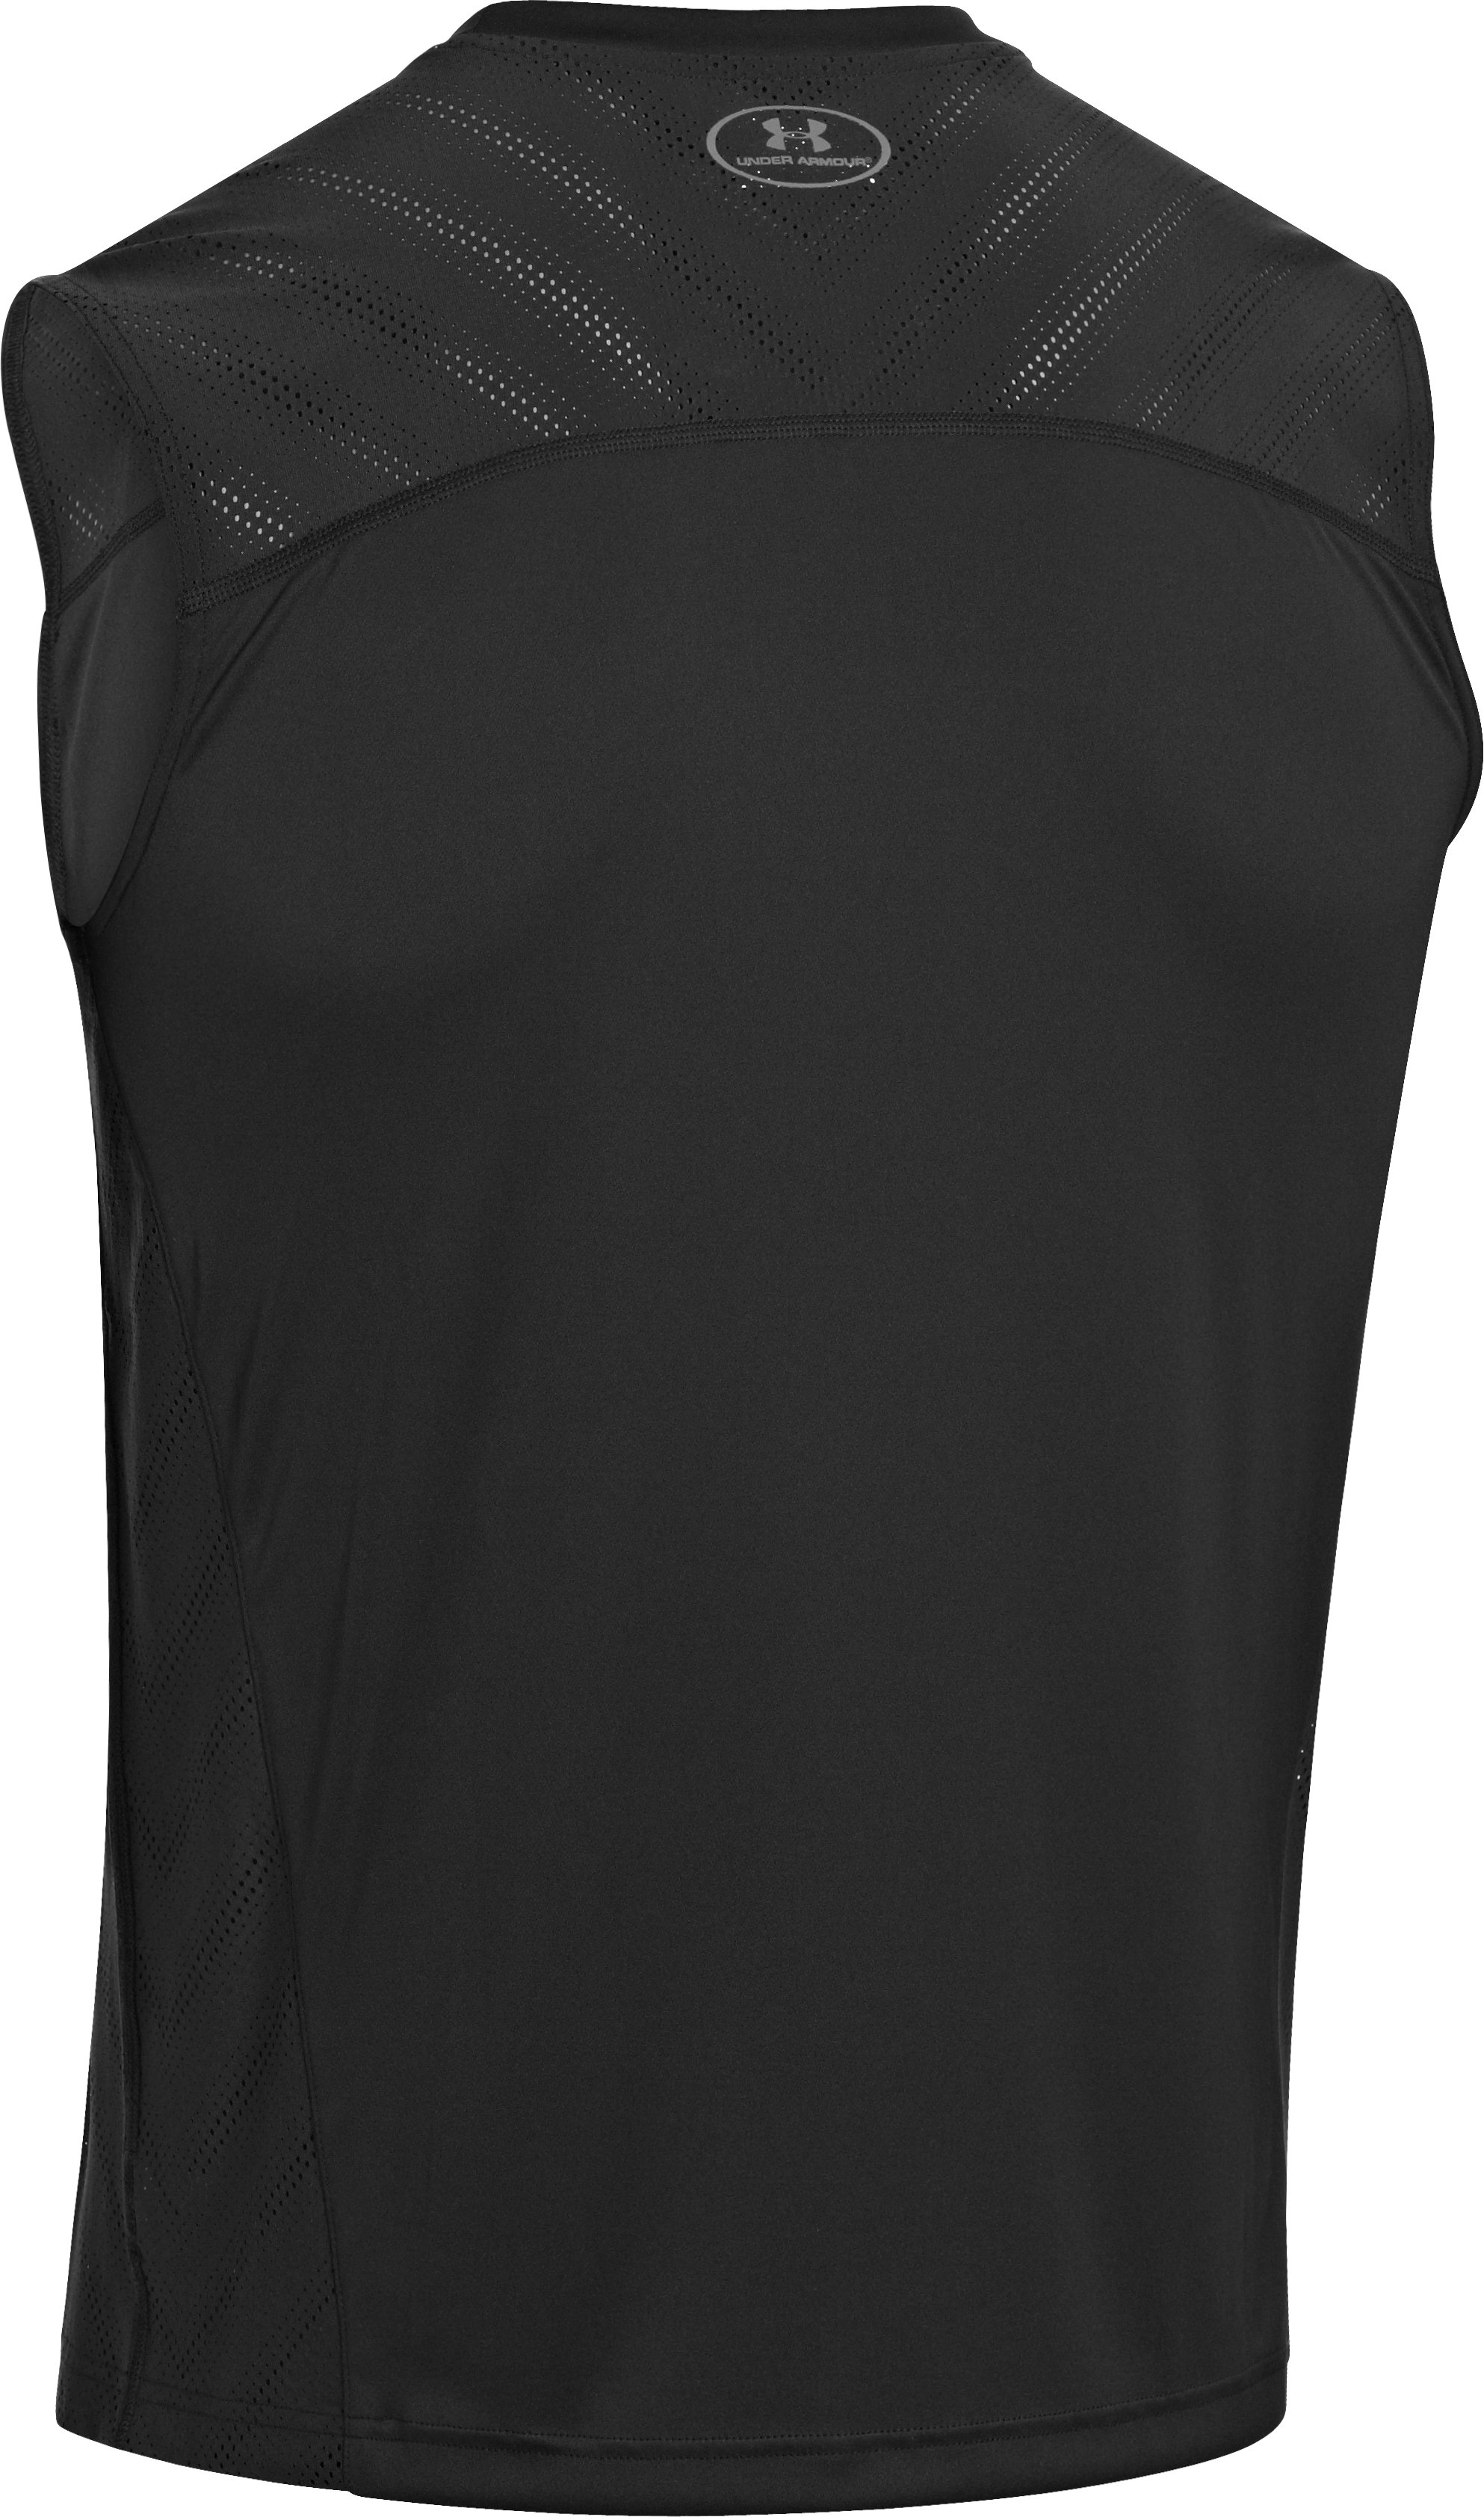 Men's HeatGear® ArmourVent™ Sleeveless Training T-Shirt, Black